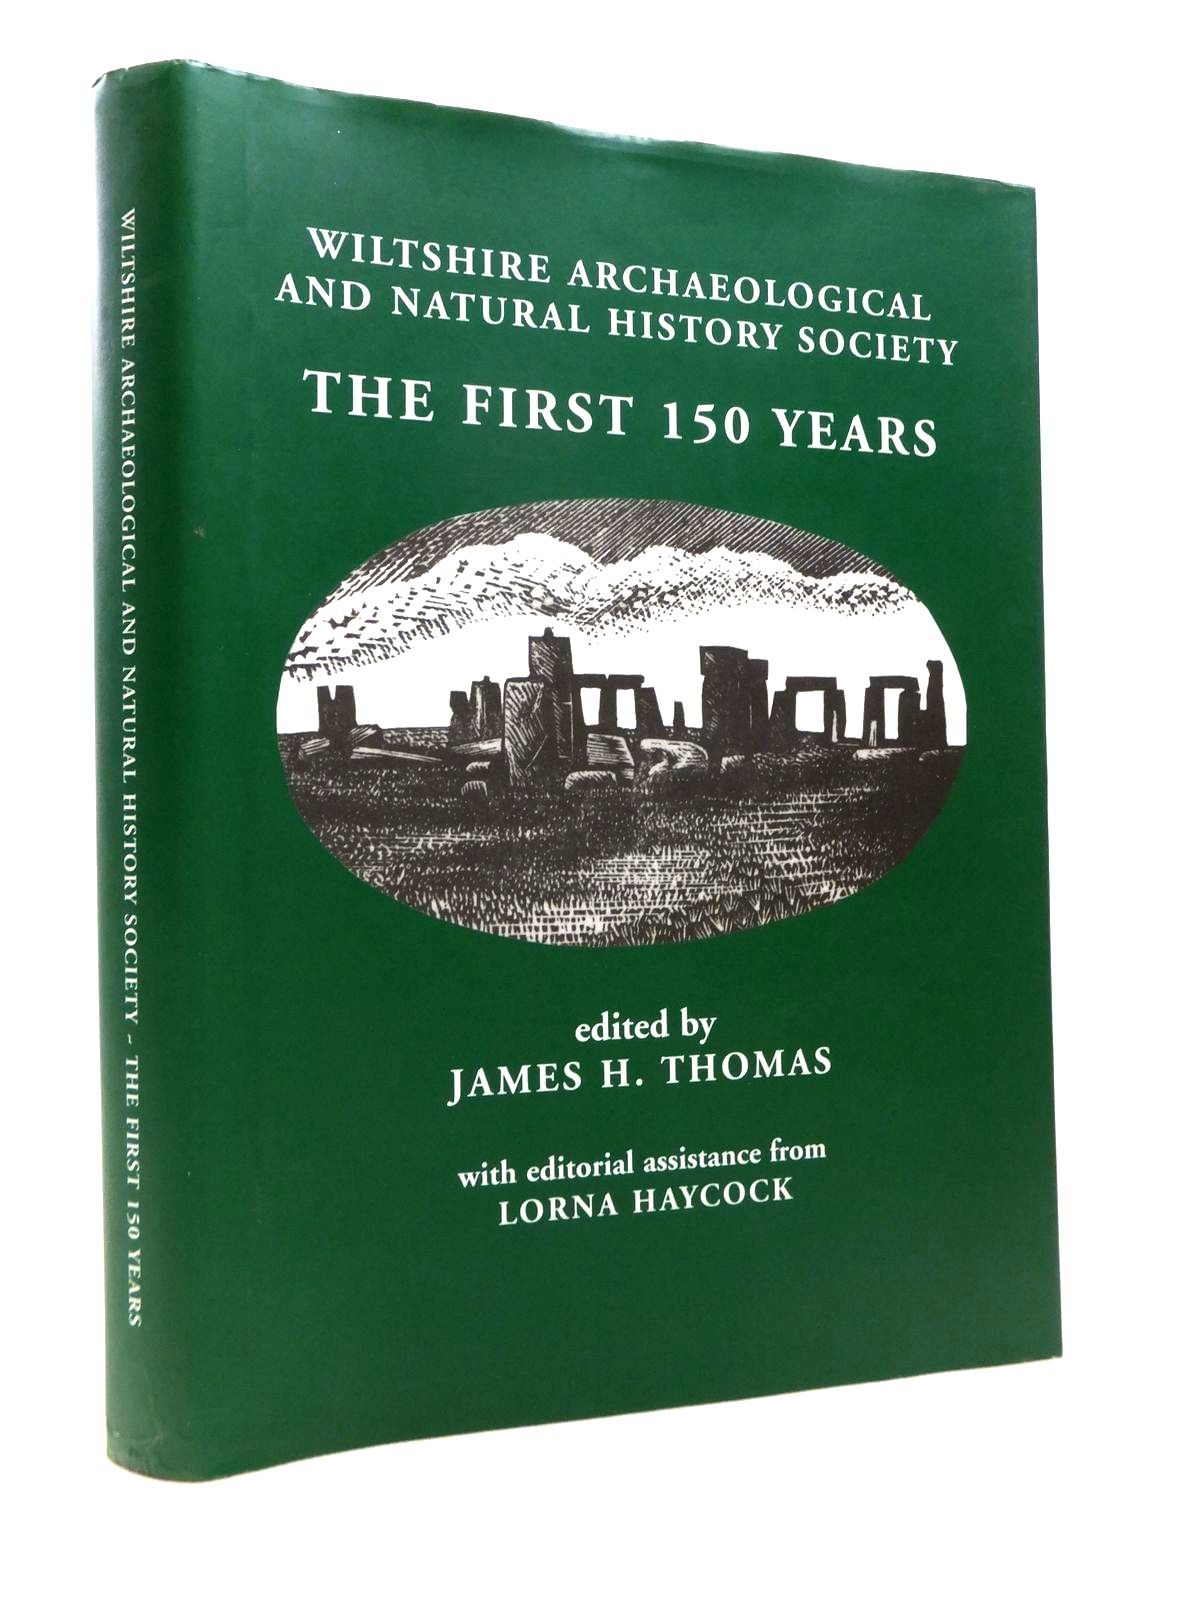 Photo of WILTSHIRE ARCHAEOLOGICAL AND NATURAL HISTORY SOCIETY: THE FIRST 150 YEARS written by Thomas, James H. published by W.A.N.H.S. Devizes (STOCK CODE: 1812292)  for sale by Stella & Rose's Books